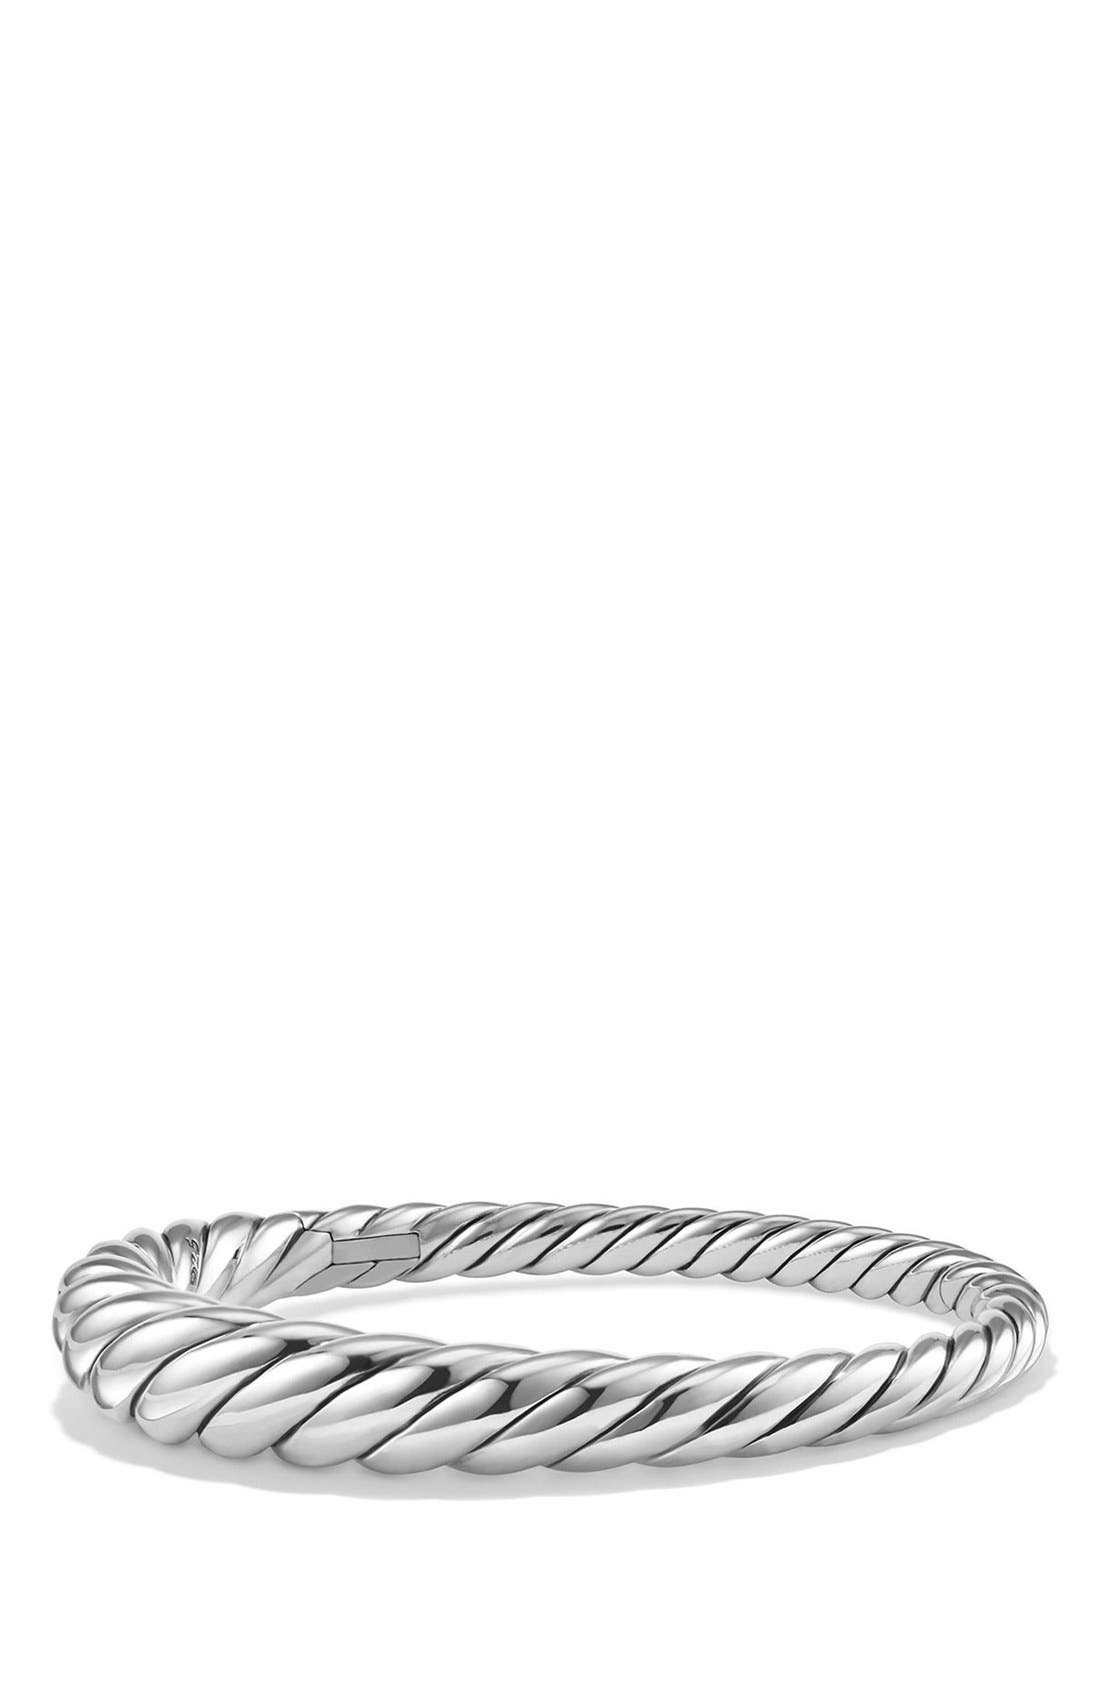 DAVID YURMAN Pure Form Small Cable Bracelet